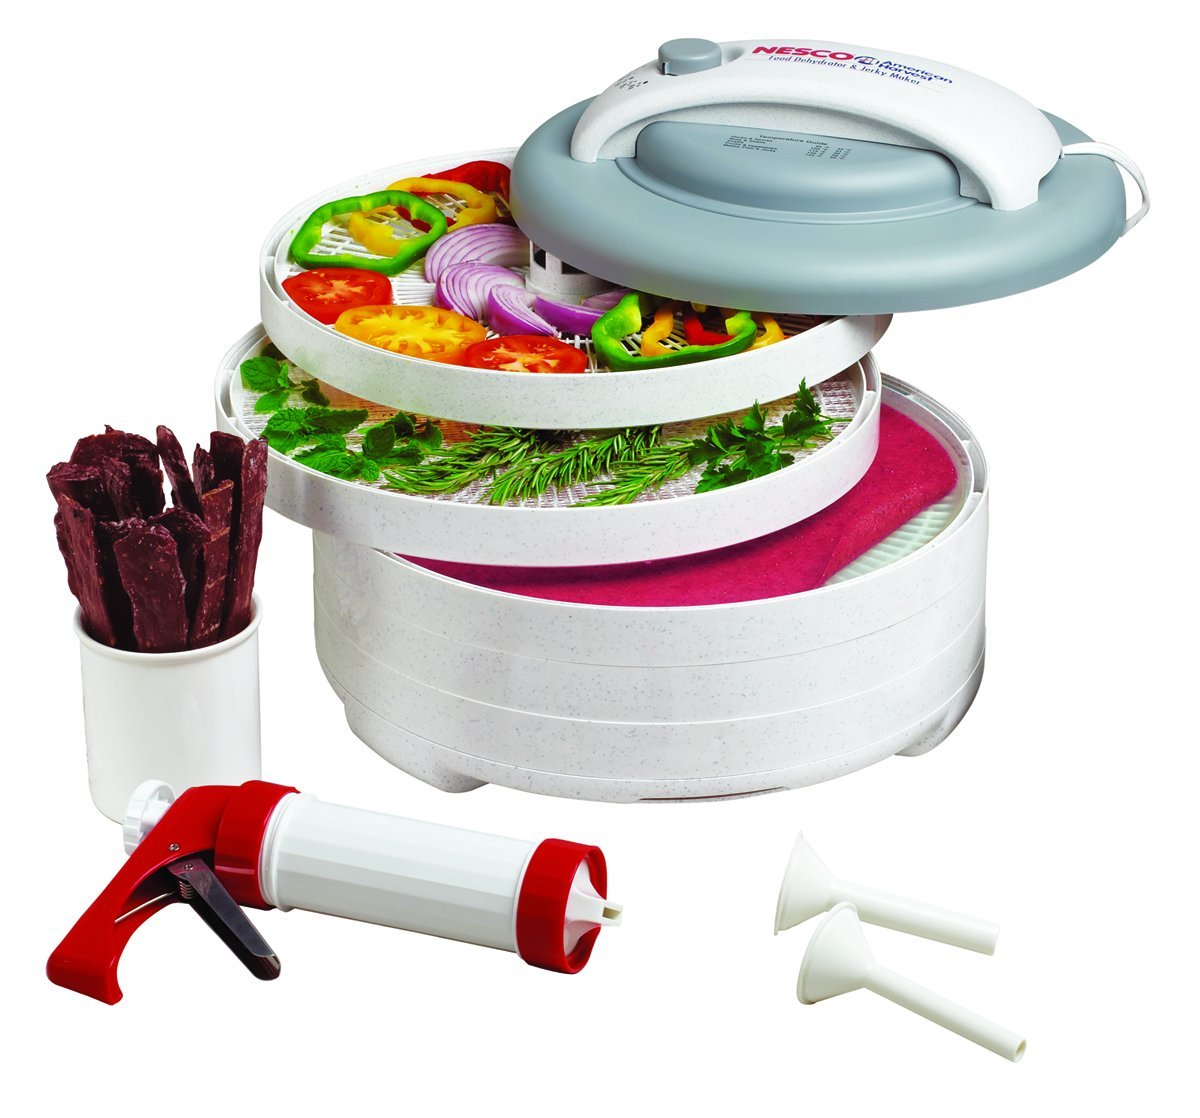 Nesco FD-61WHC Snackmaster Express Food Dehydrator All-In-One Kit with Jerky Gun - MADE IN USA by Nesco